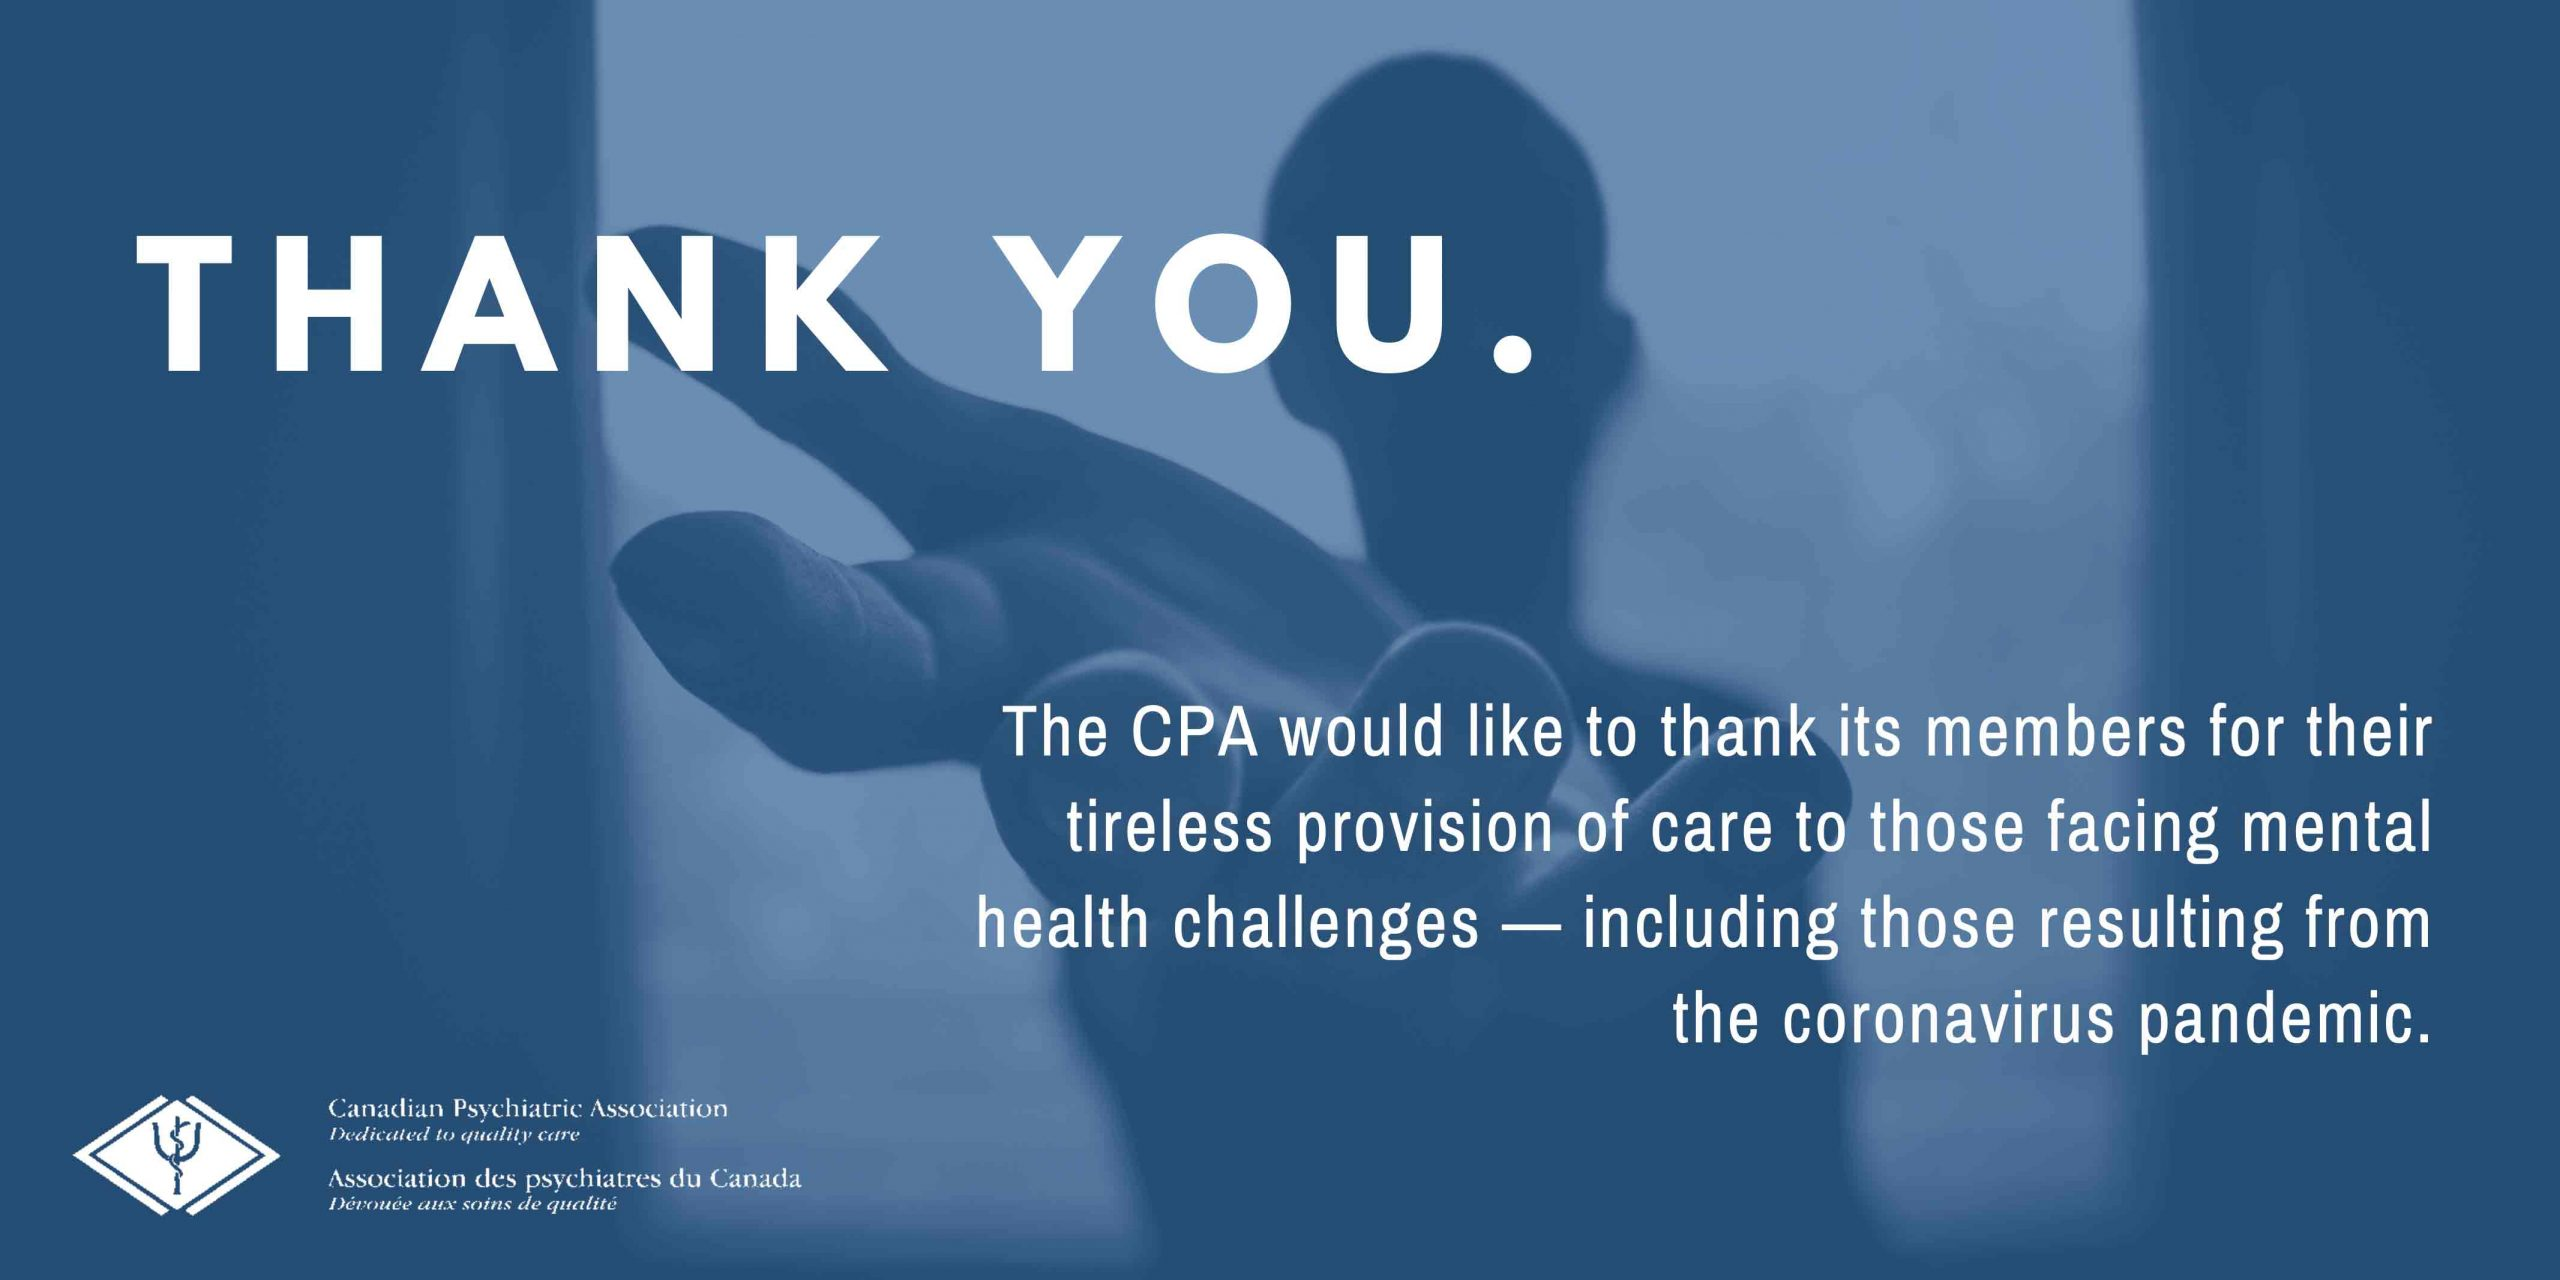 Thank you to CPA Members